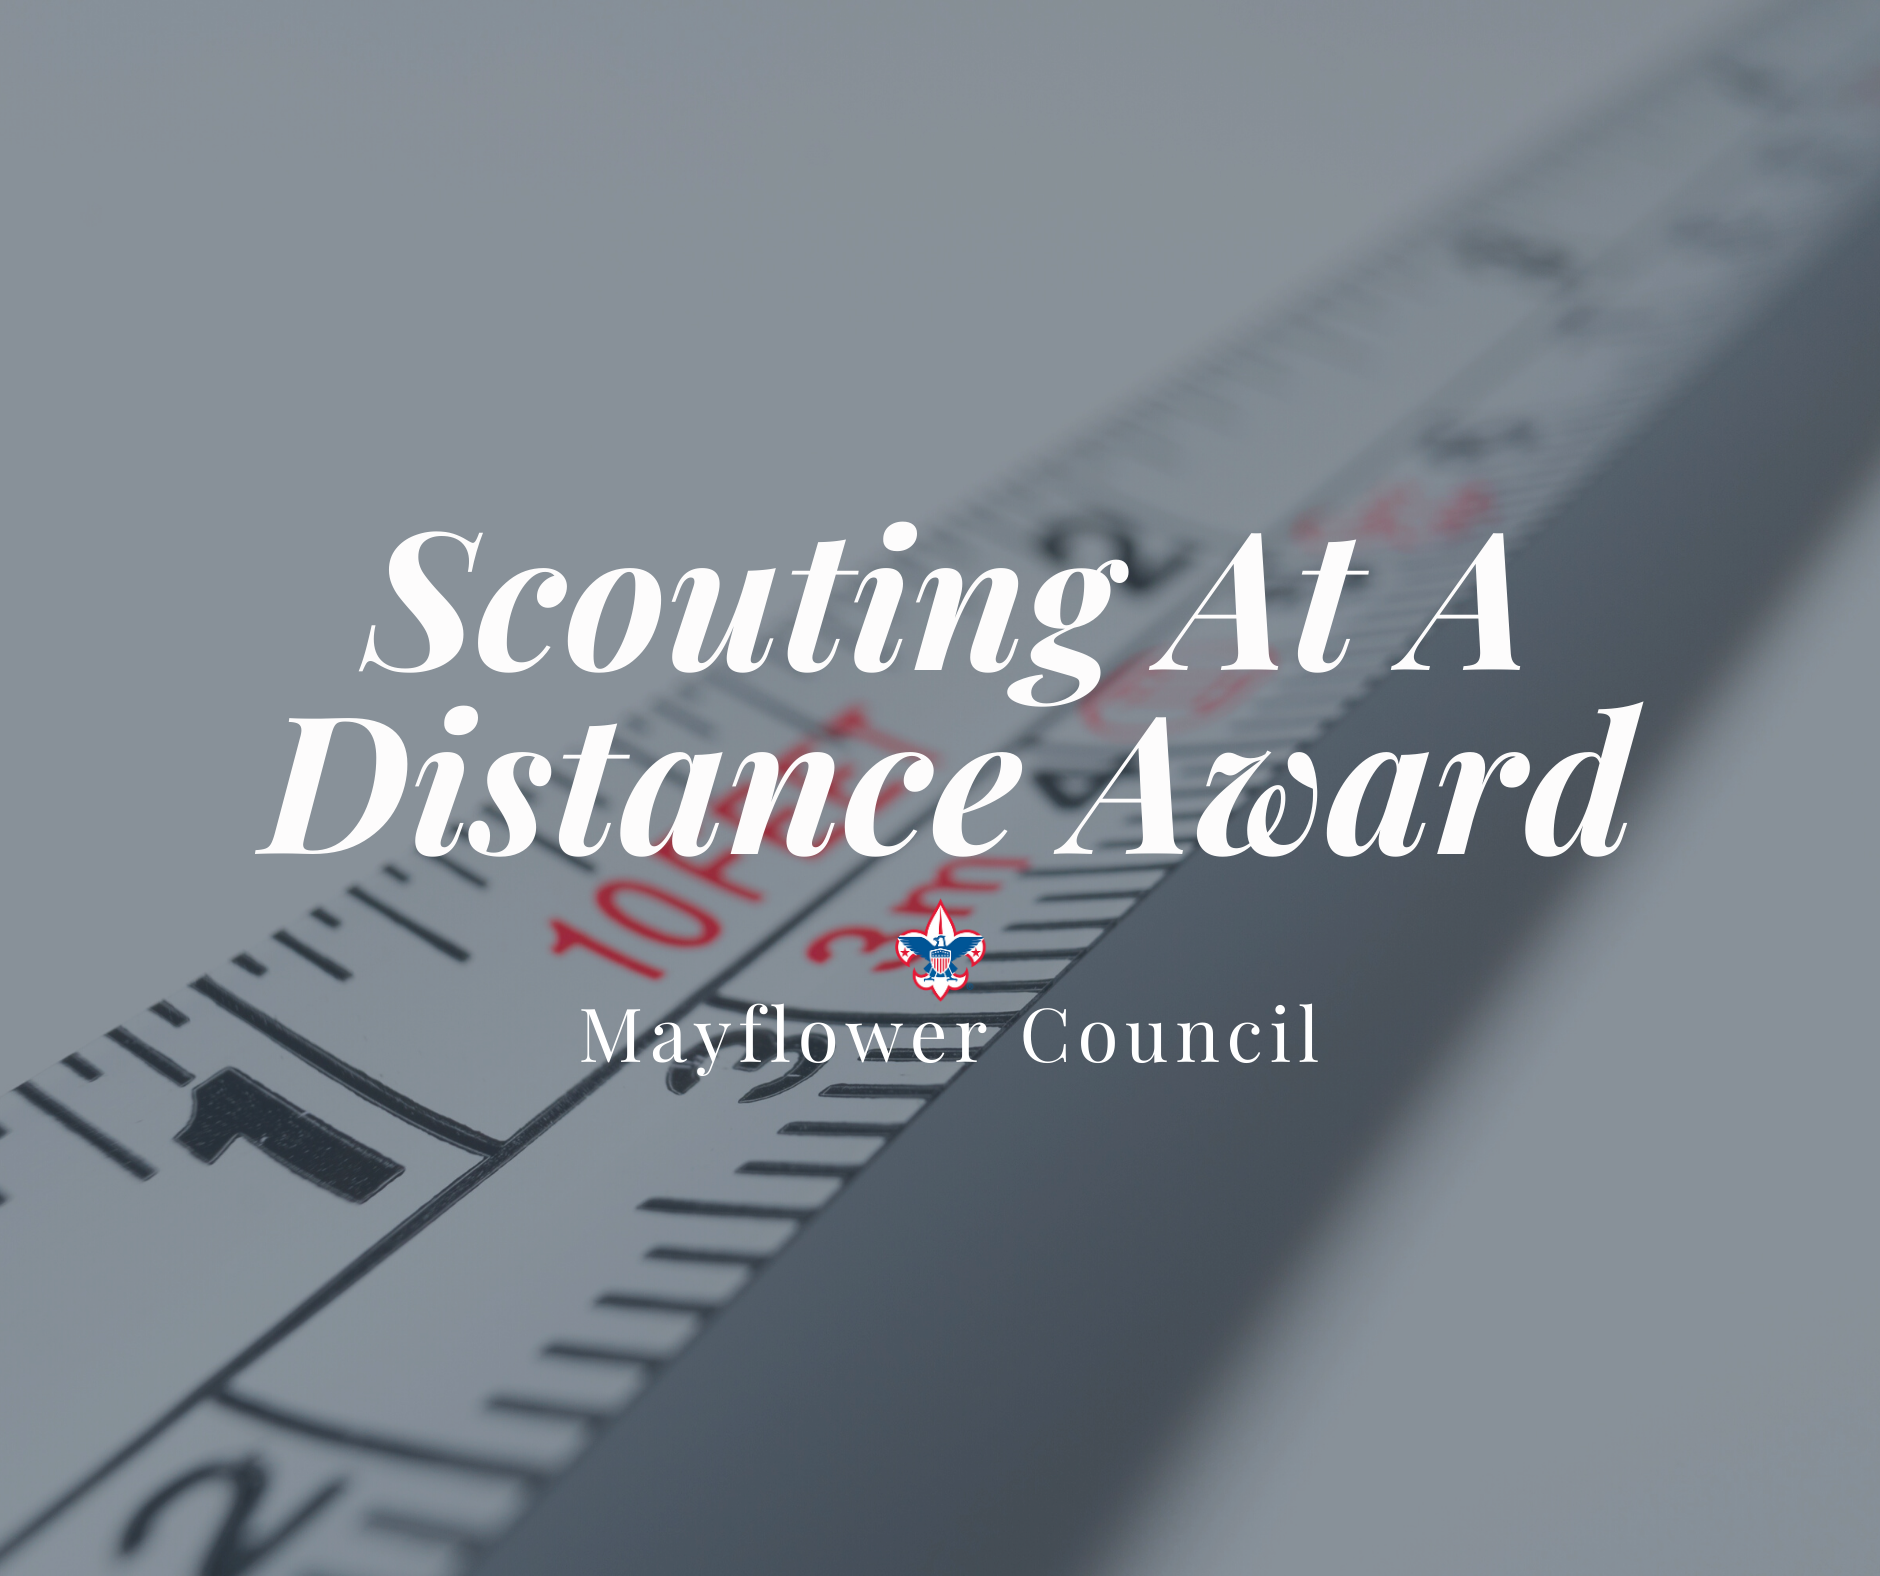 Scouting At A Distance Award Image